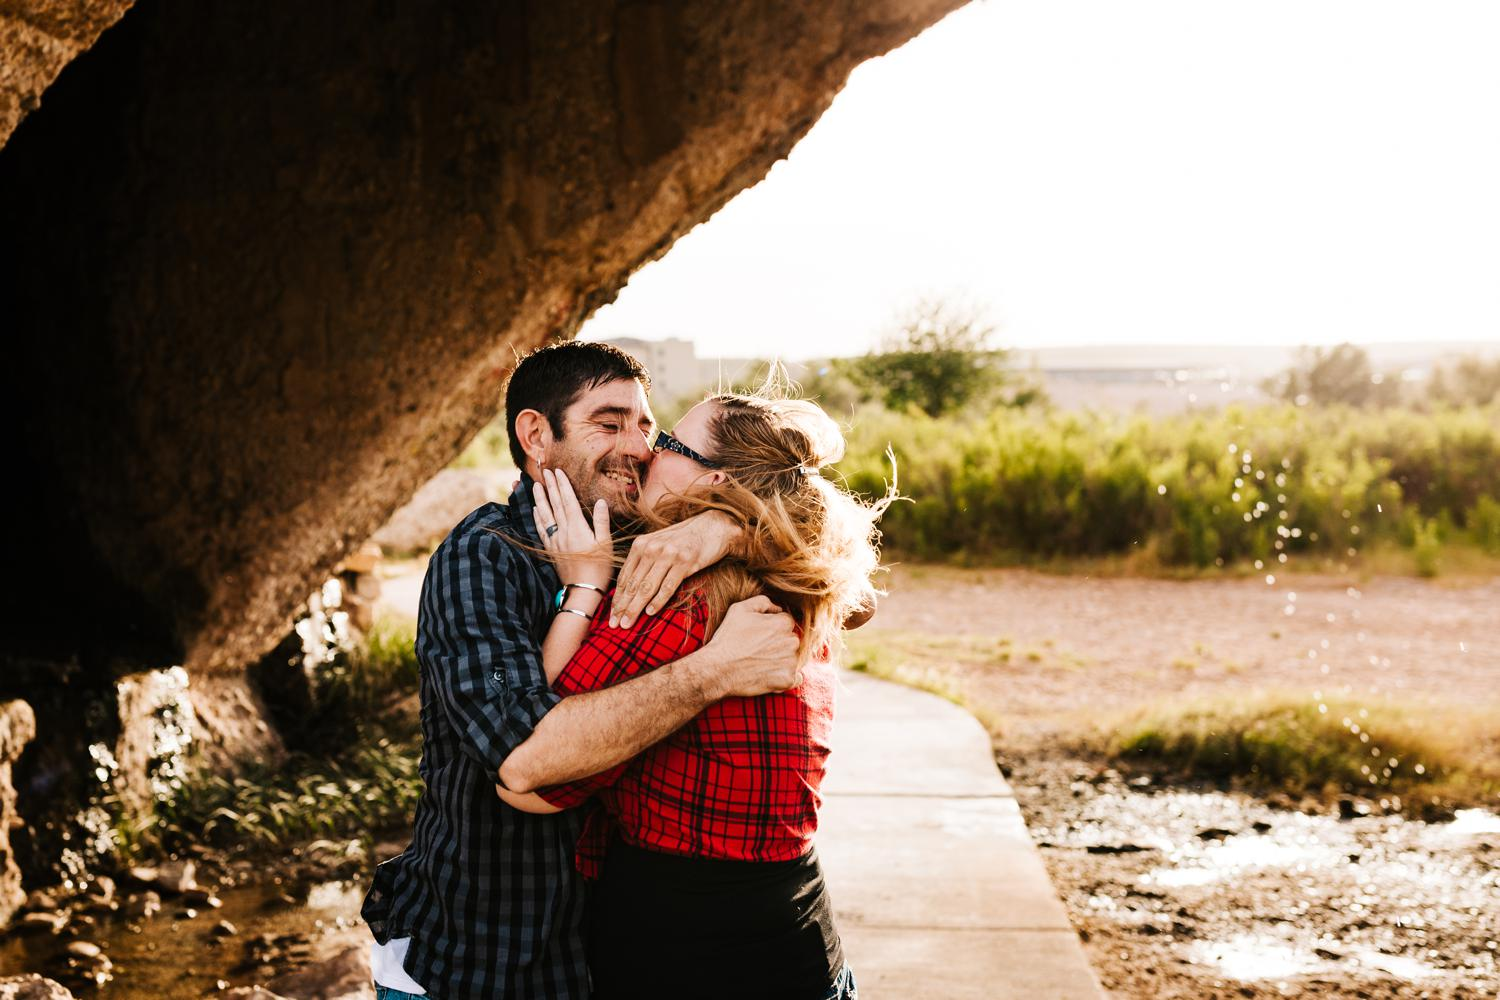 1. carlsbad-new-mexico-flumes-engagement-adventurous-boston-wedding-photographer-natural-albuquerque-fun-Andrea-van-orsouw-photography3.jpg